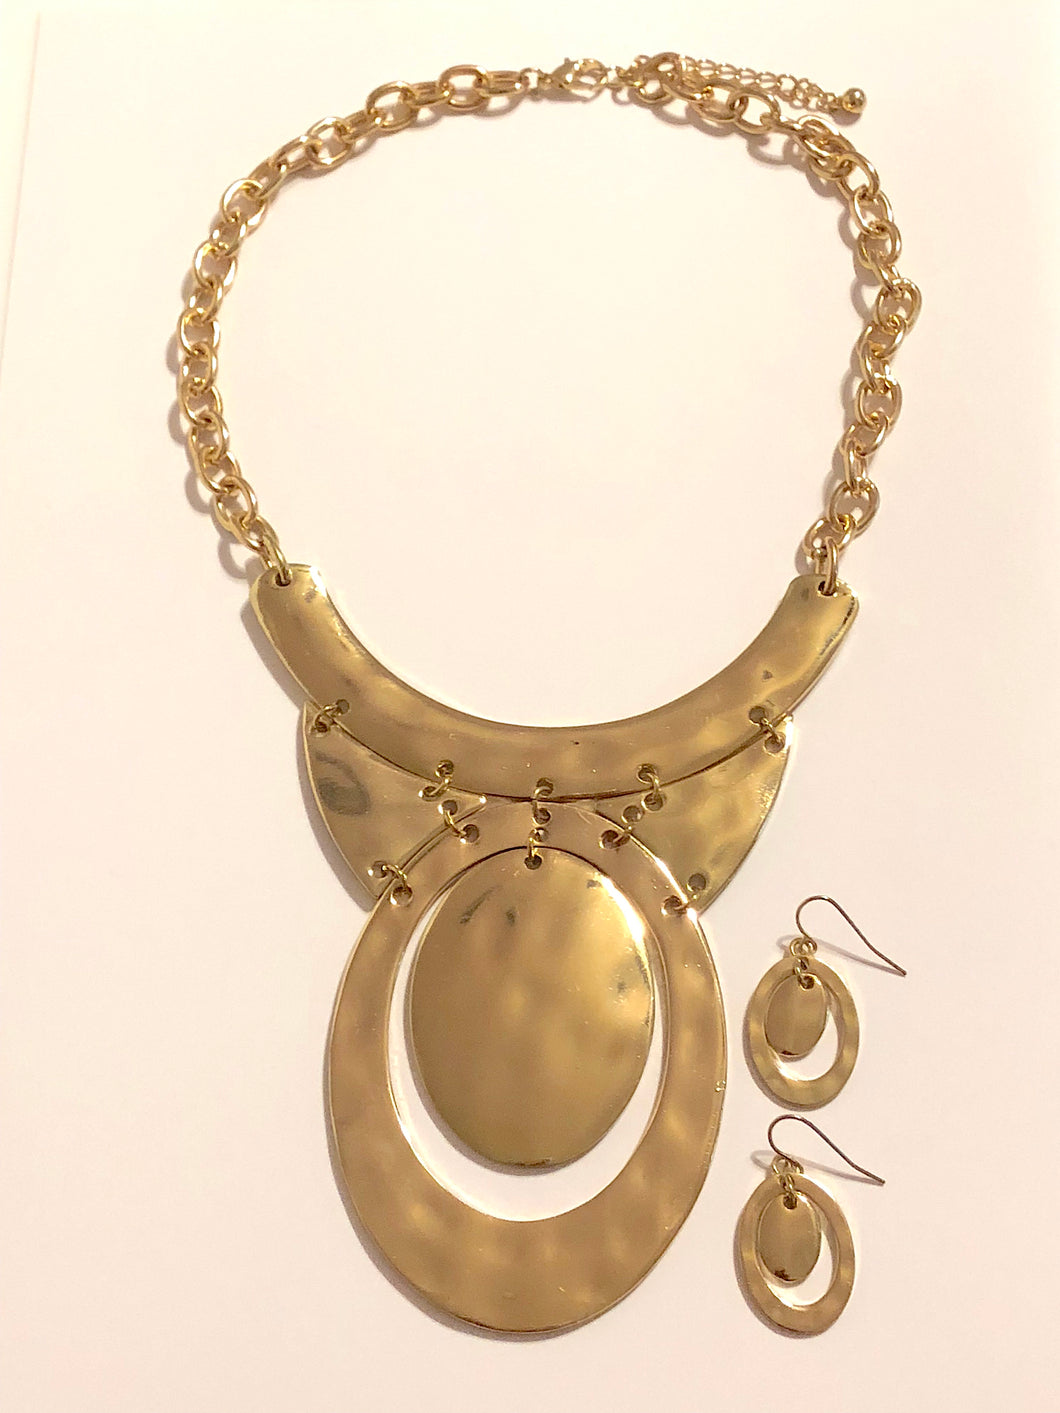 Satin Bronze Tone  Bib Necklace and Earrings